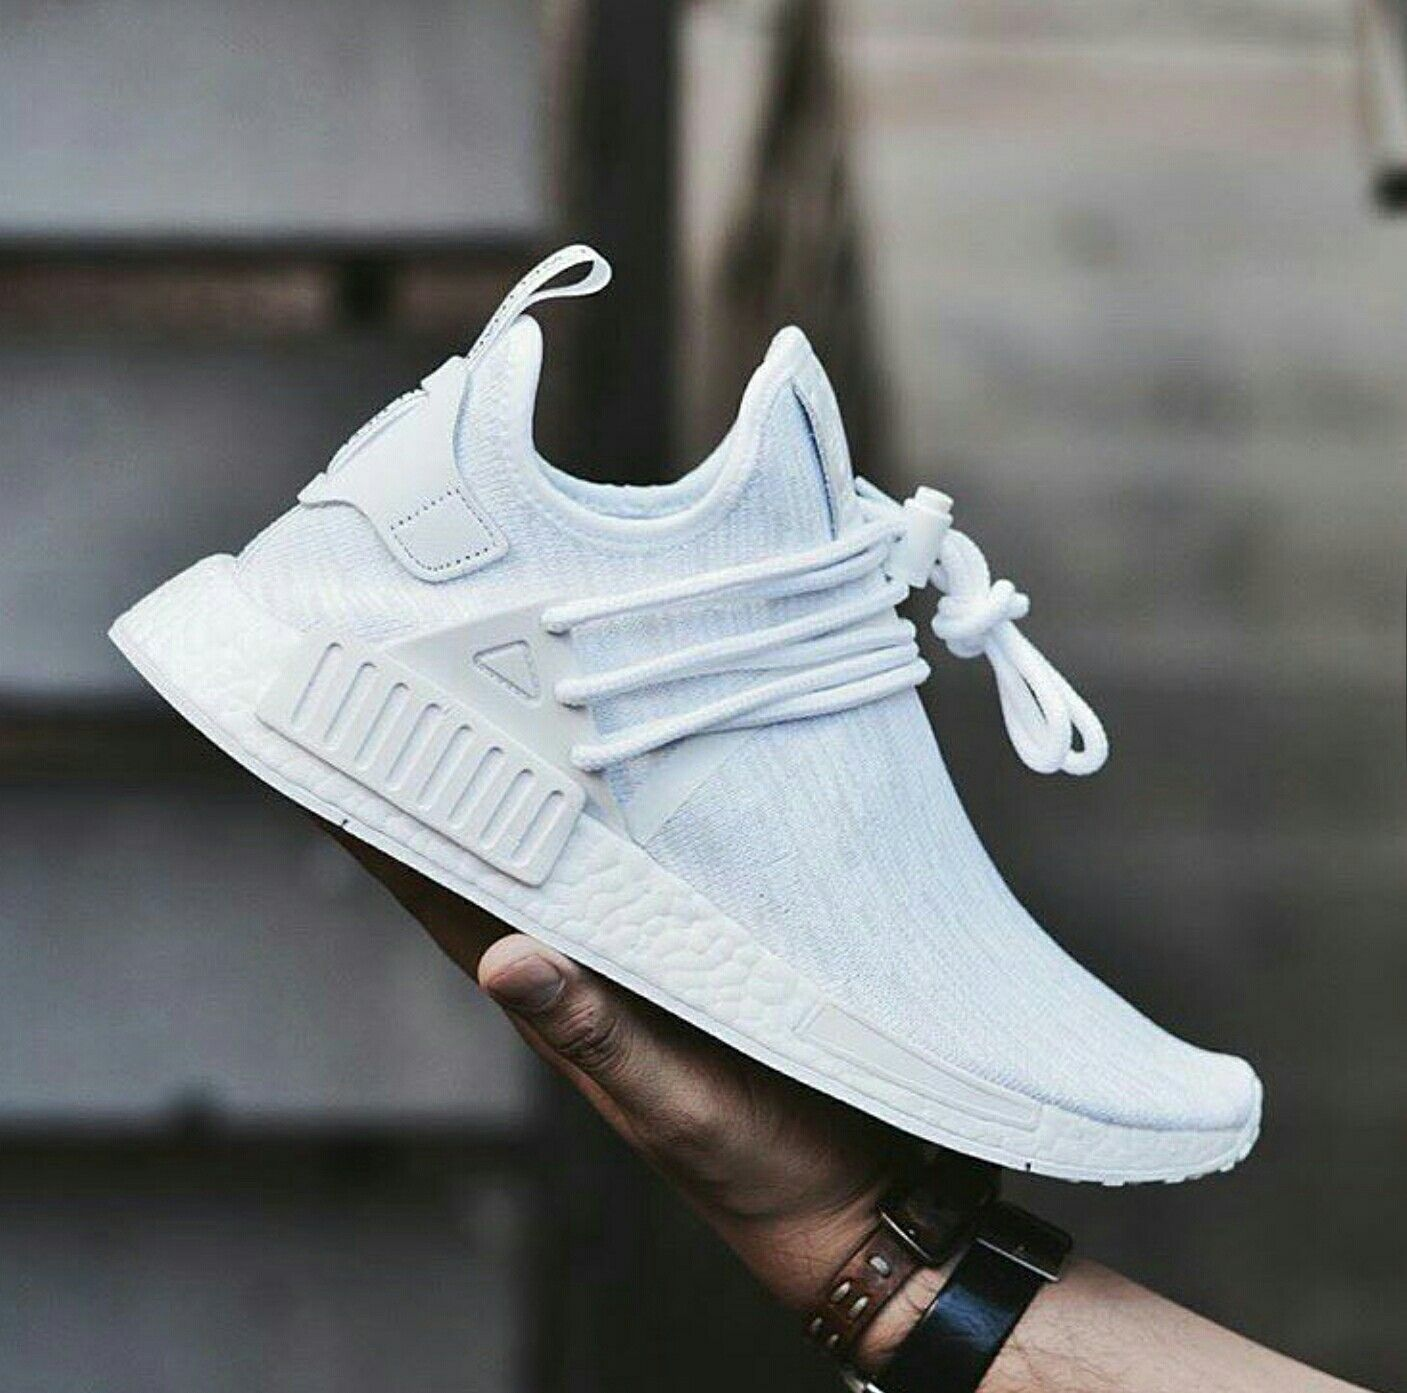 Adidas boost | Adidas shoes women, Sneakers fashion, Adidas